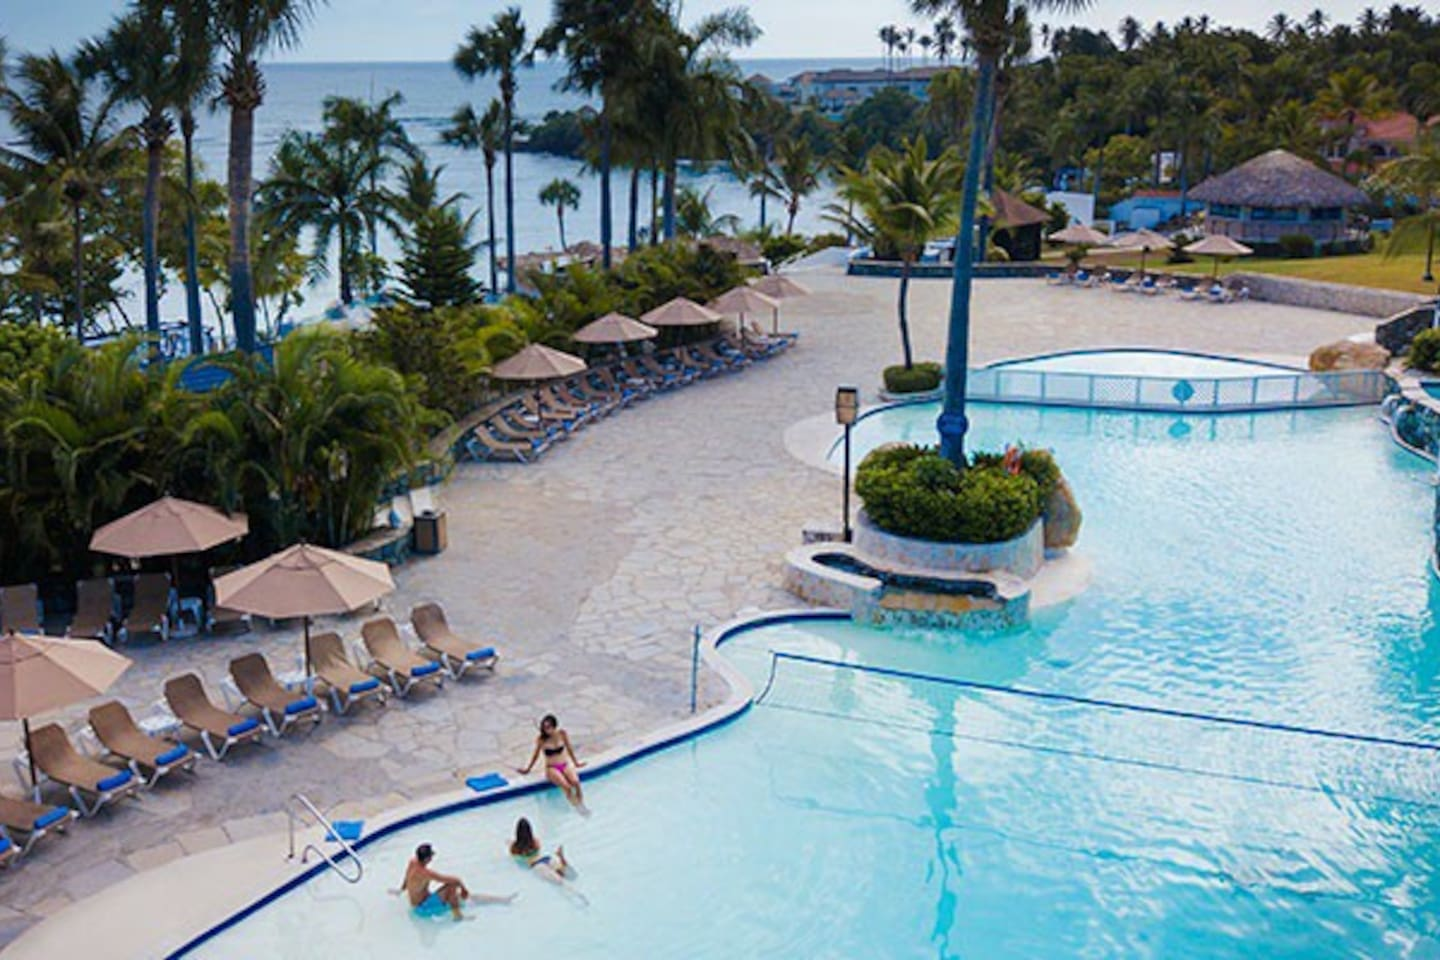 Room for 4 person,one or 2 doy le beds,air conditioned,balcony,daily room service,kínder bed,9 restaurants,3 bares,11 swiming Pools,Discotec,free kids club and more